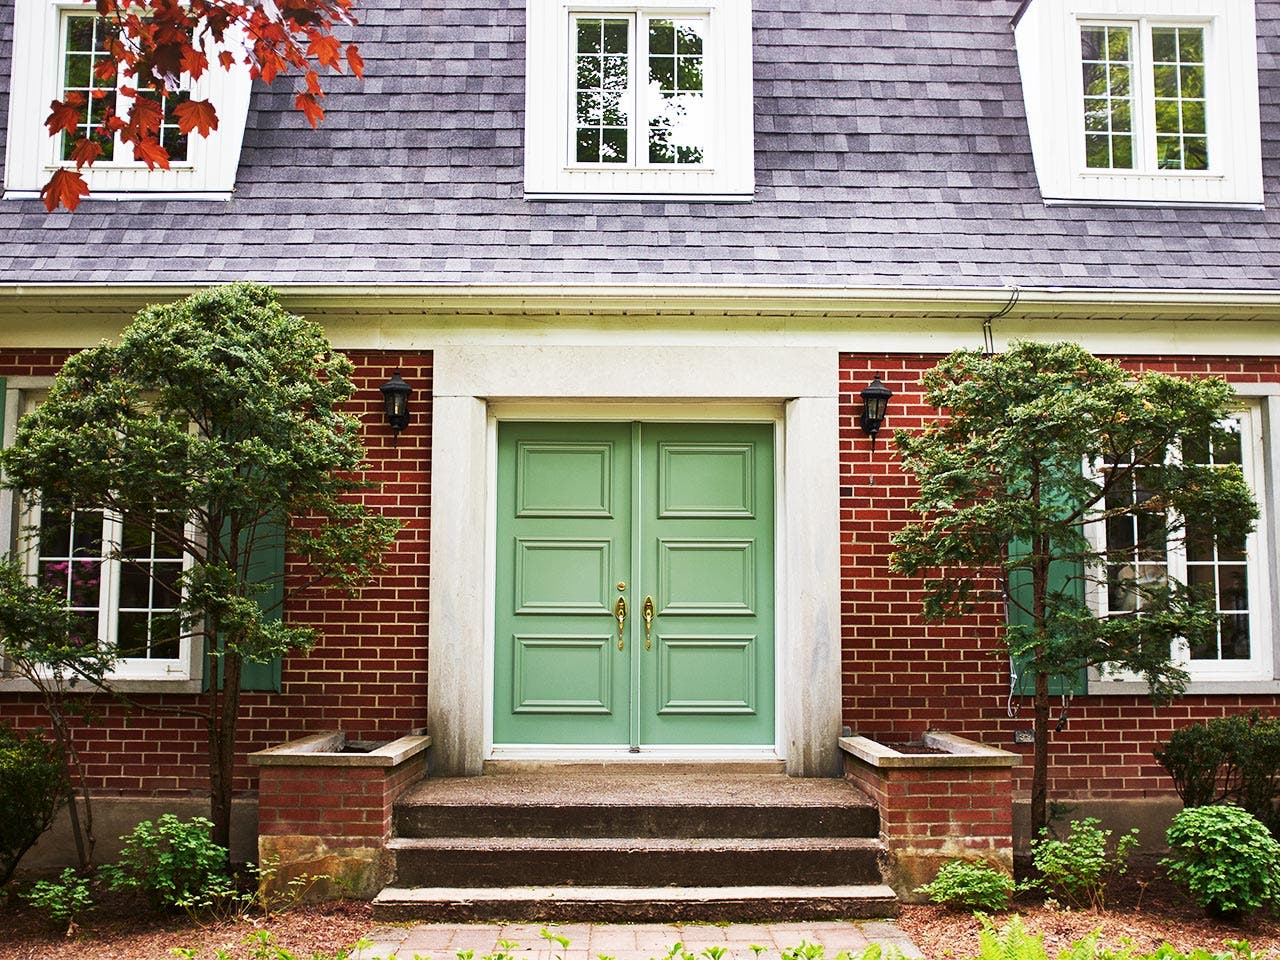 Front of house showing green double doors